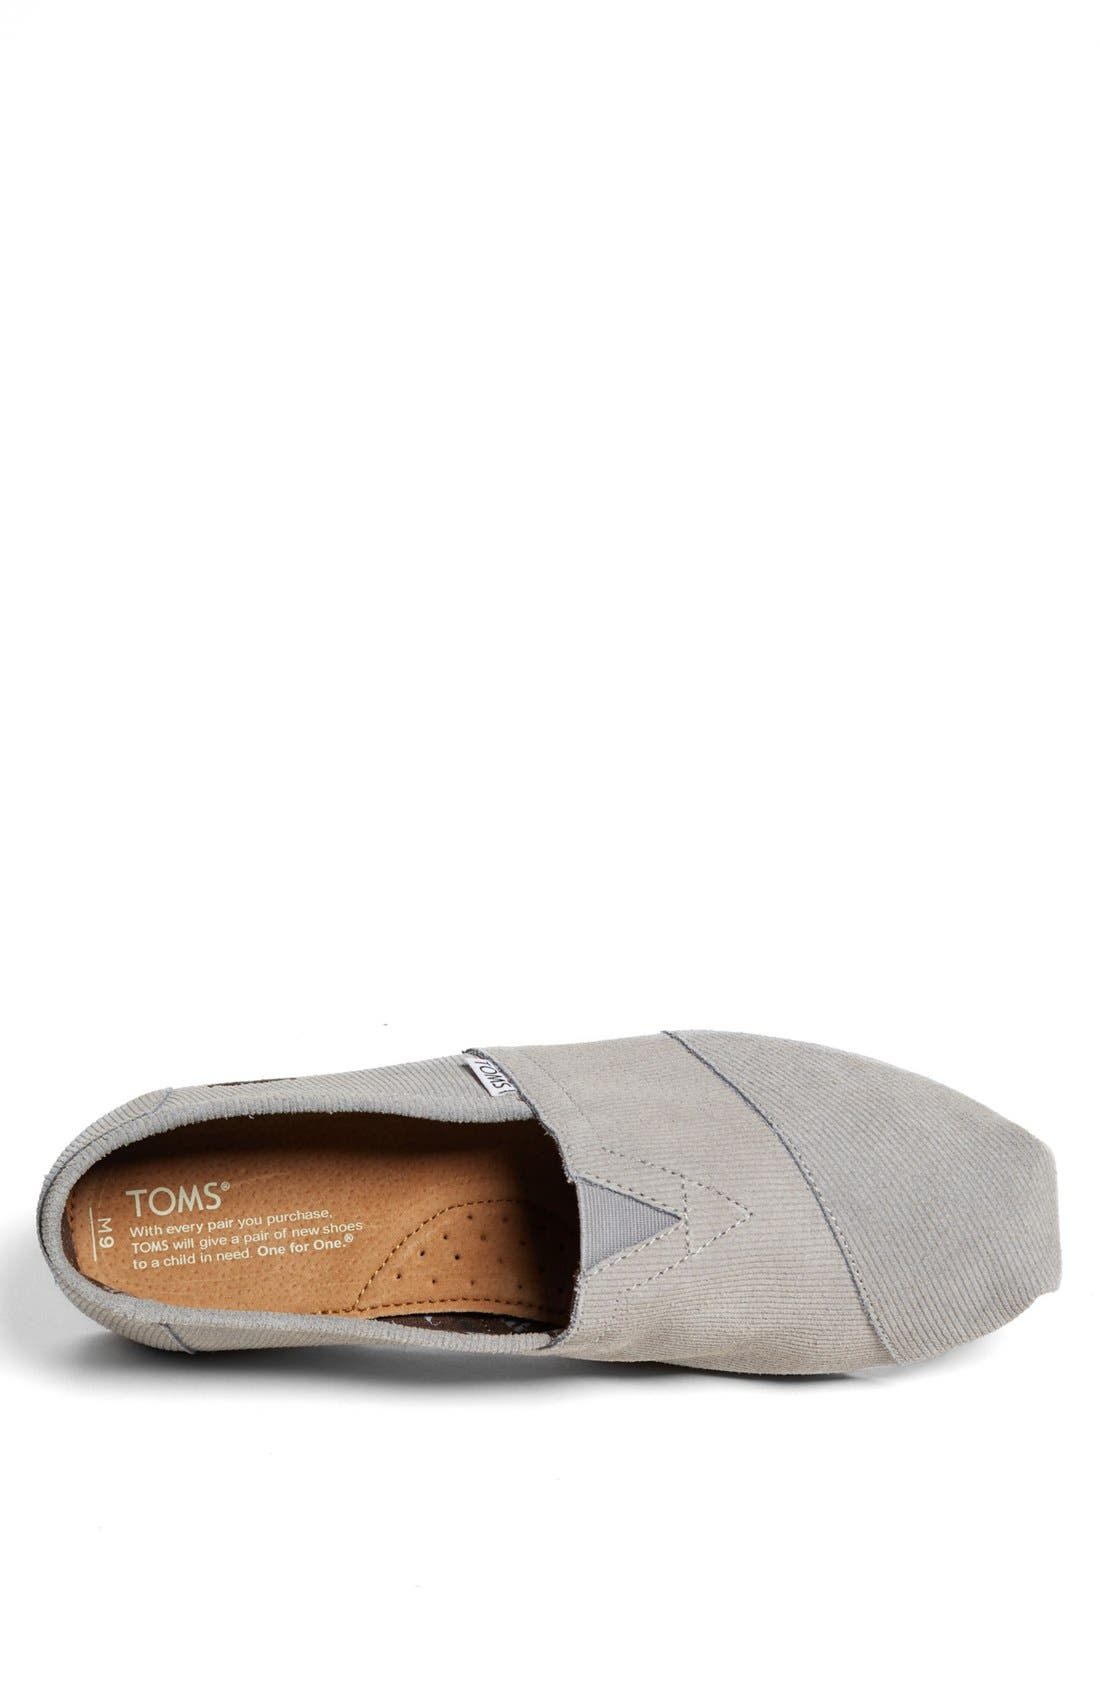 Alternate Image 3  - TOMS 'Movember Classic' Slip-On (Men) (Limited Edition - Movember)